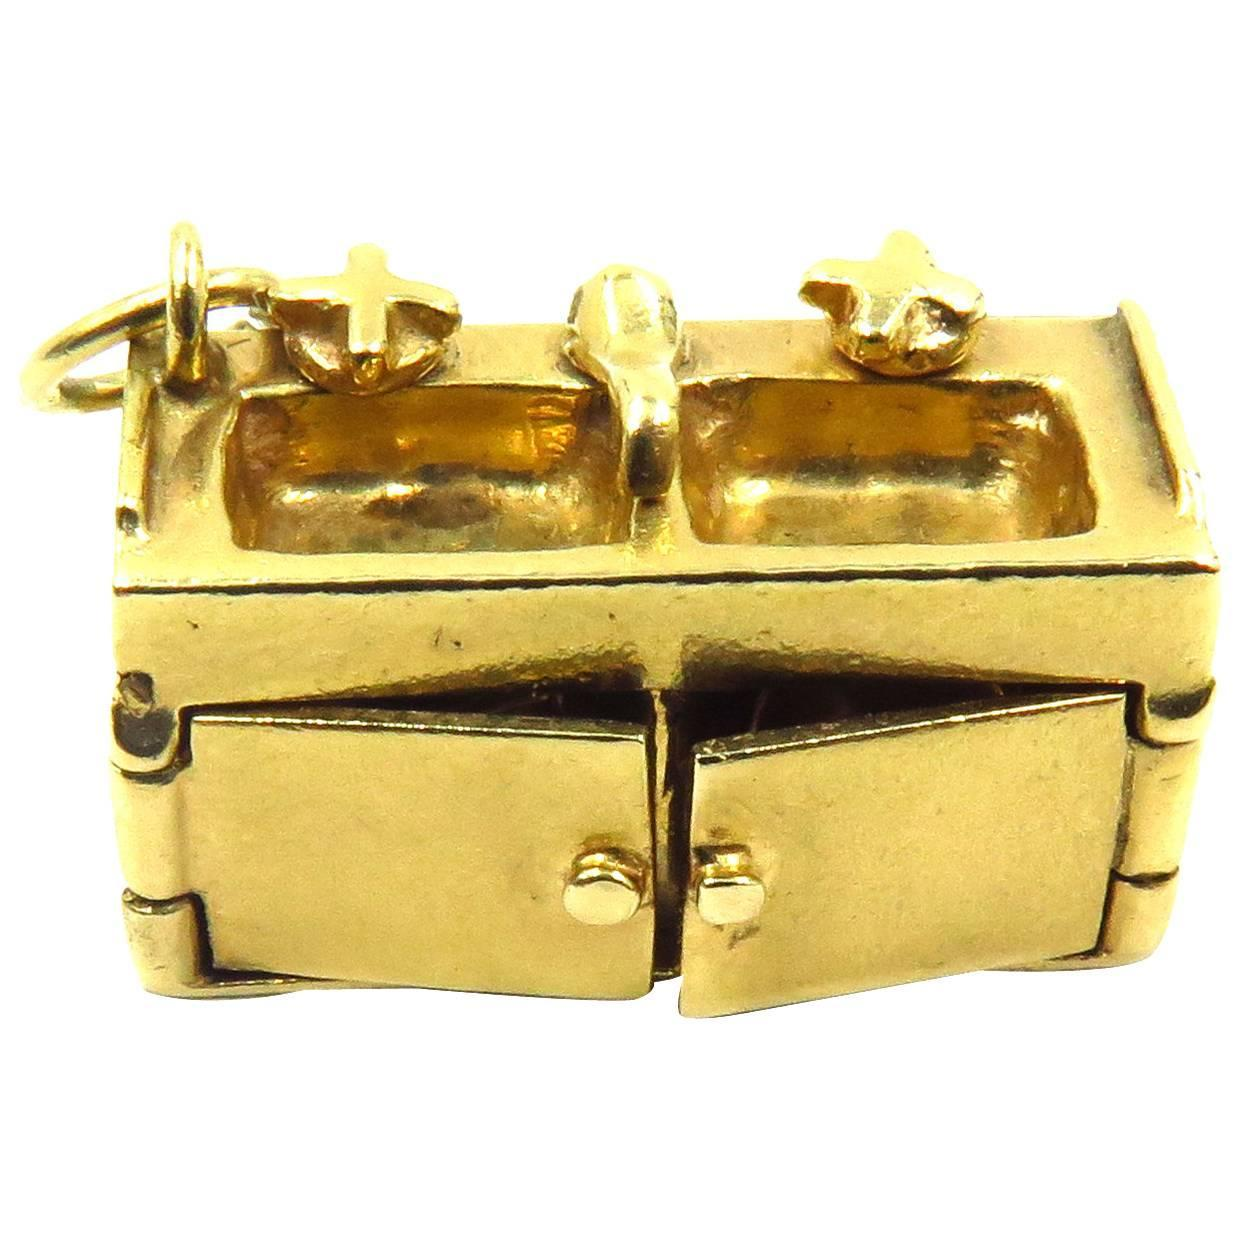 Rare Amazing Kitchen Sink With 5 Movable Parts Gold Charm Pendant ...